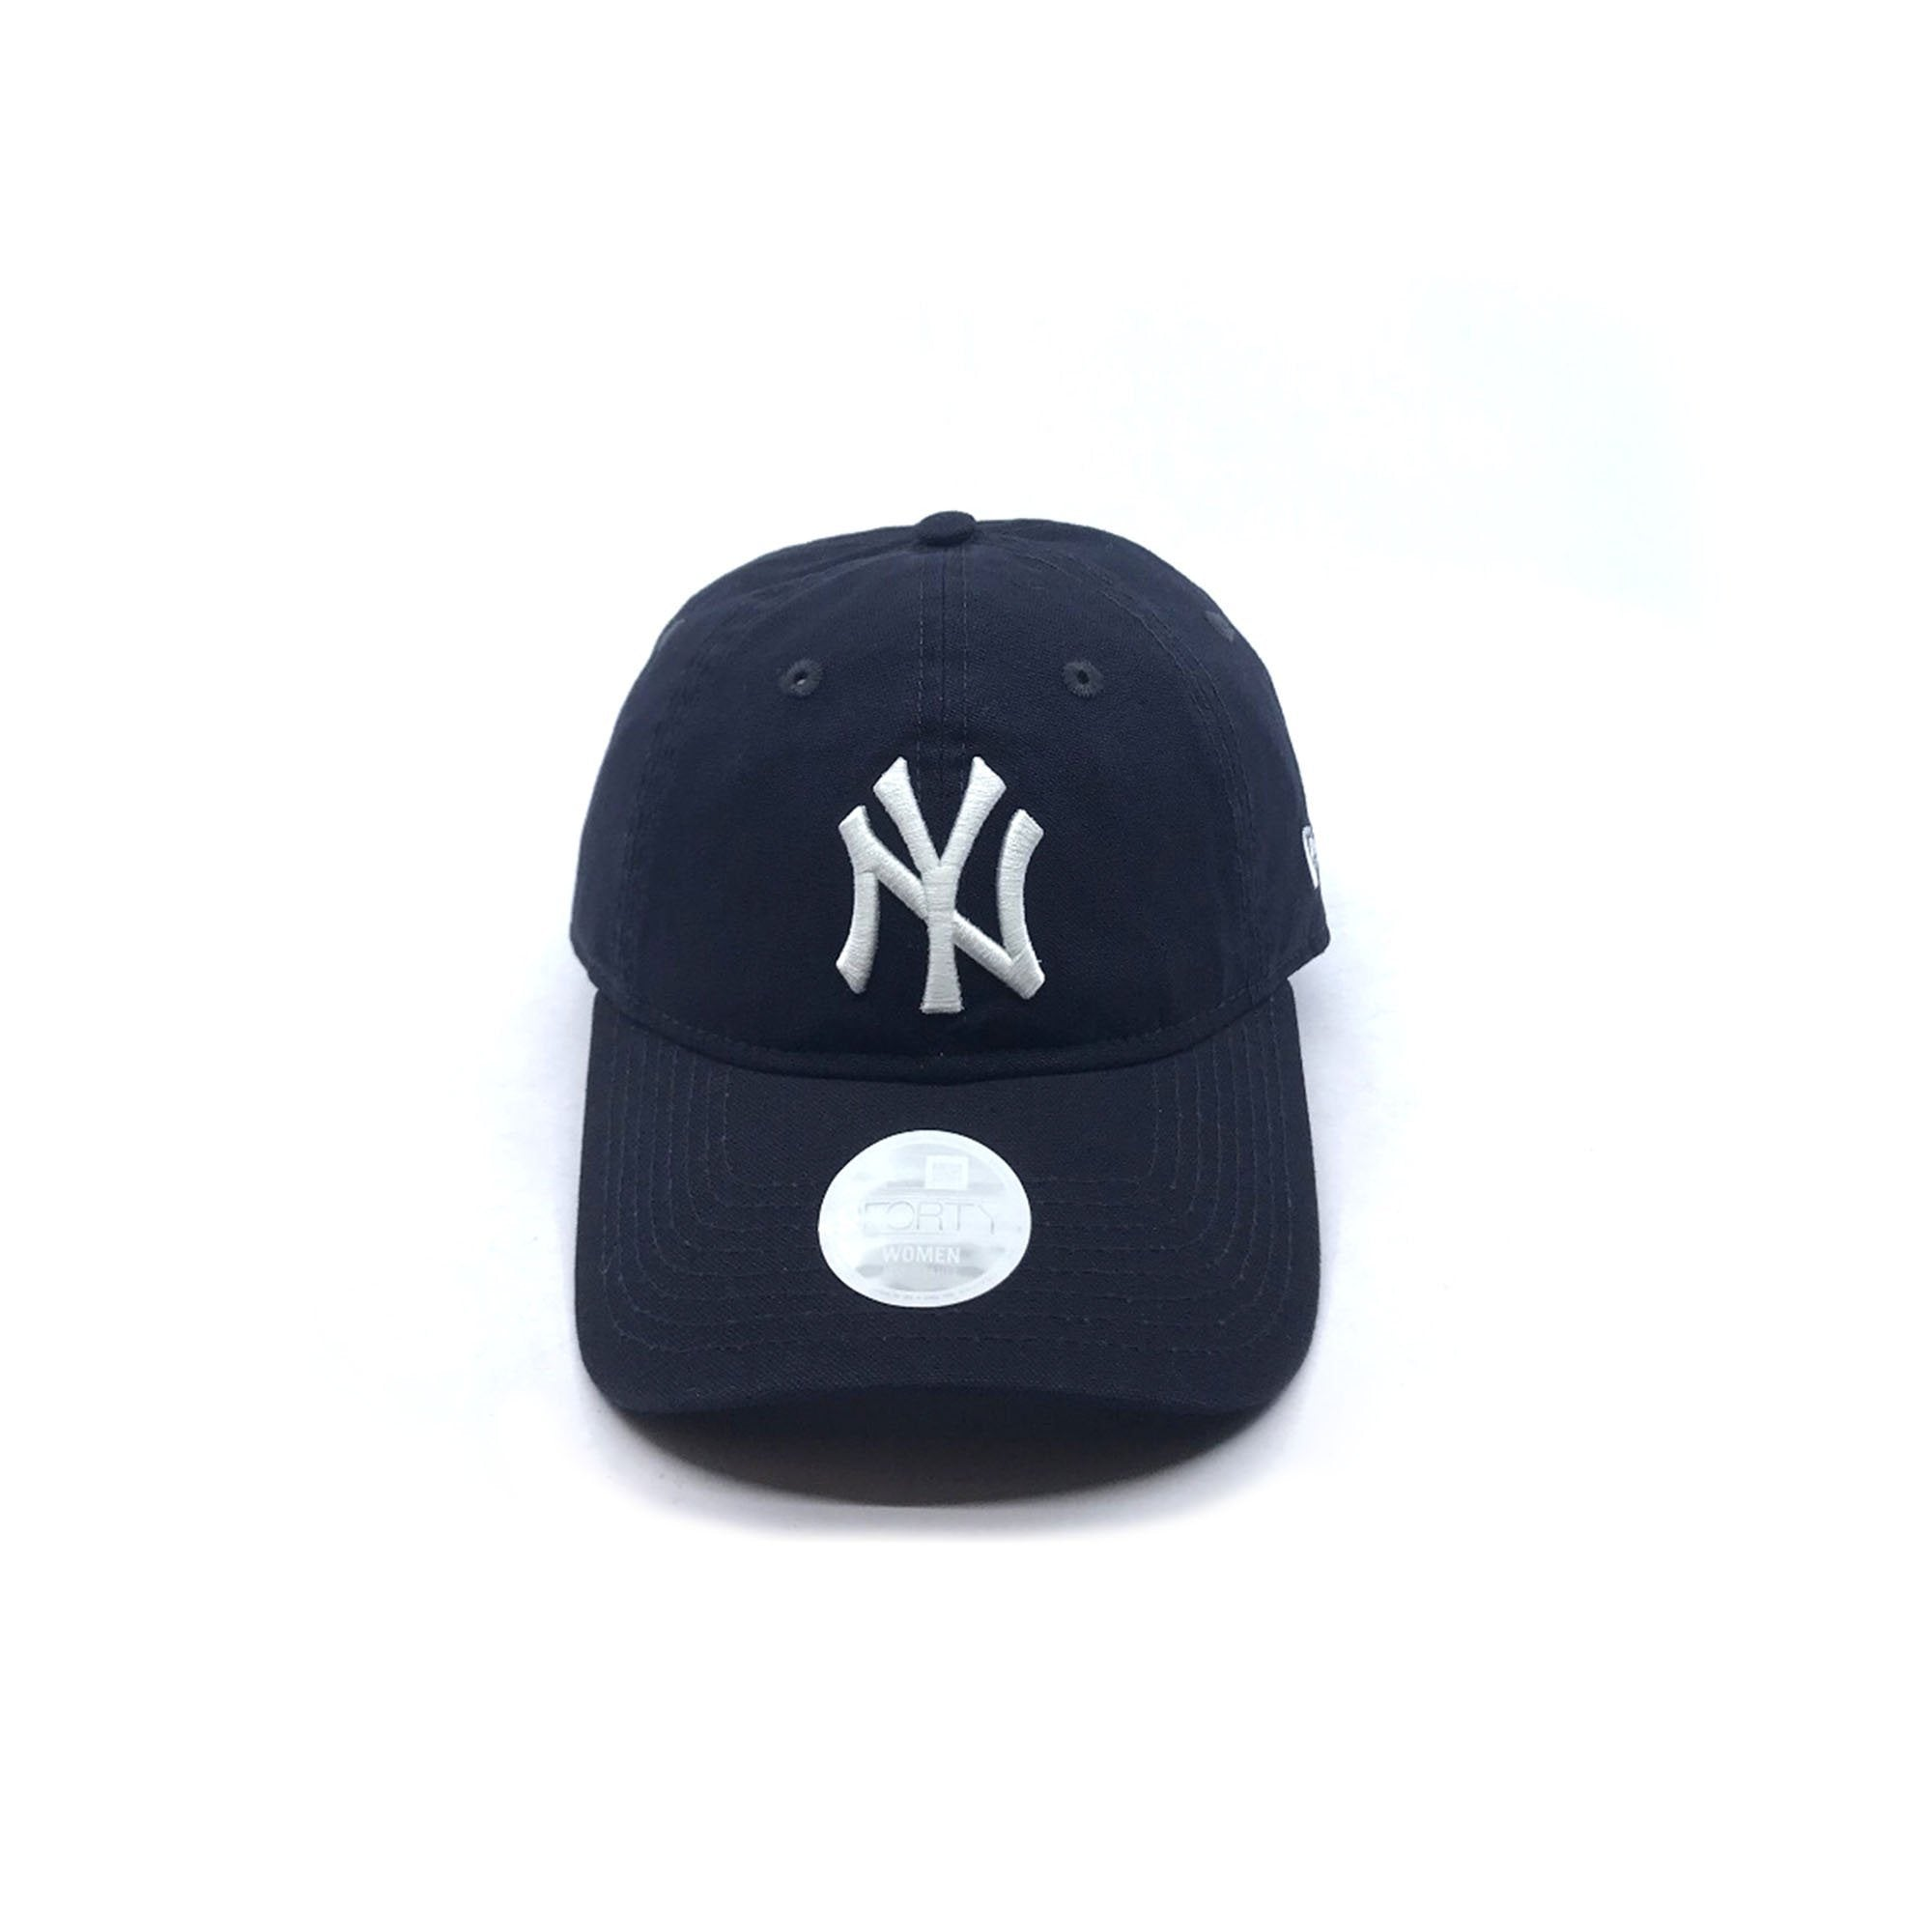 New Era Women's 9FORTY - New York Yankees- Worn Canvas SP-Headwear-Caps New Era